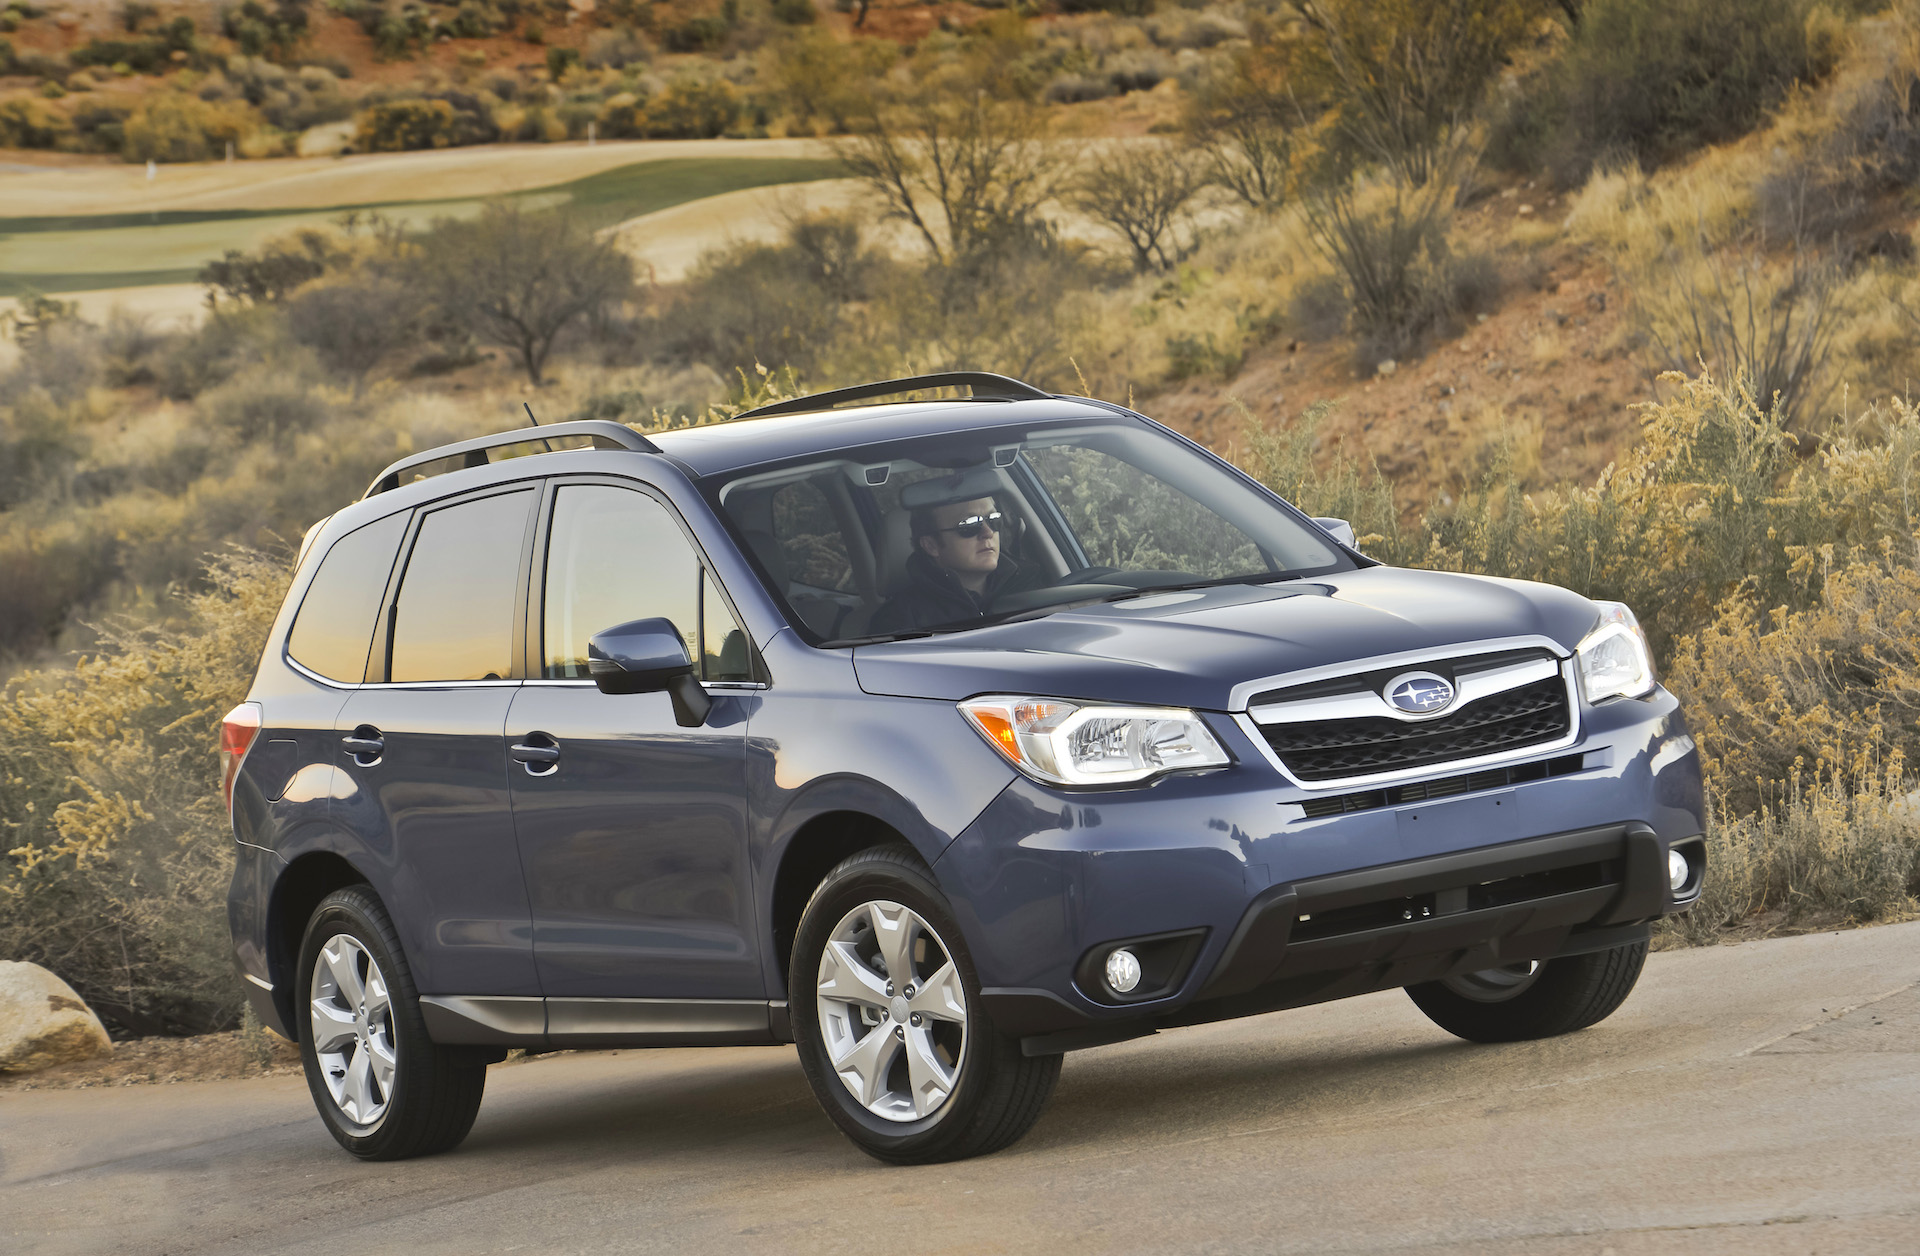 new and used subaru forester prices photos reviews specs the car connection. Black Bedroom Furniture Sets. Home Design Ideas